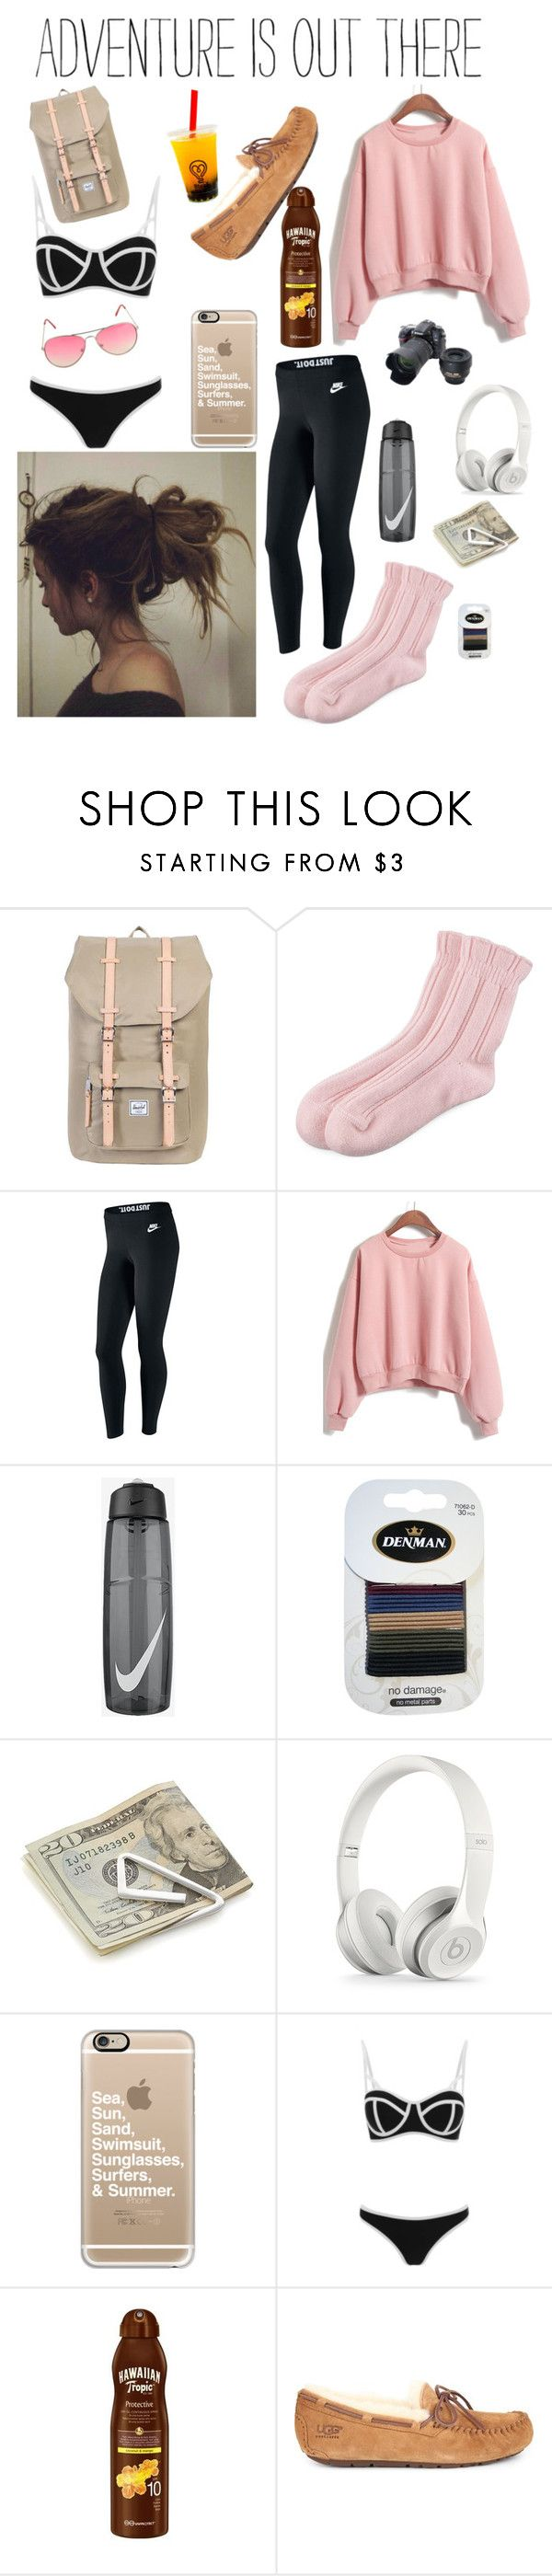 """""""At the airport ✈️"""" by kylieirwin11 ❤ liked on Polyvore featuring Herschel Supply Co., Falke, NIKE, Denman, Crate and Barrel, Nikon, Casetify, South Beach, Hawaiian Tropic and UGG"""